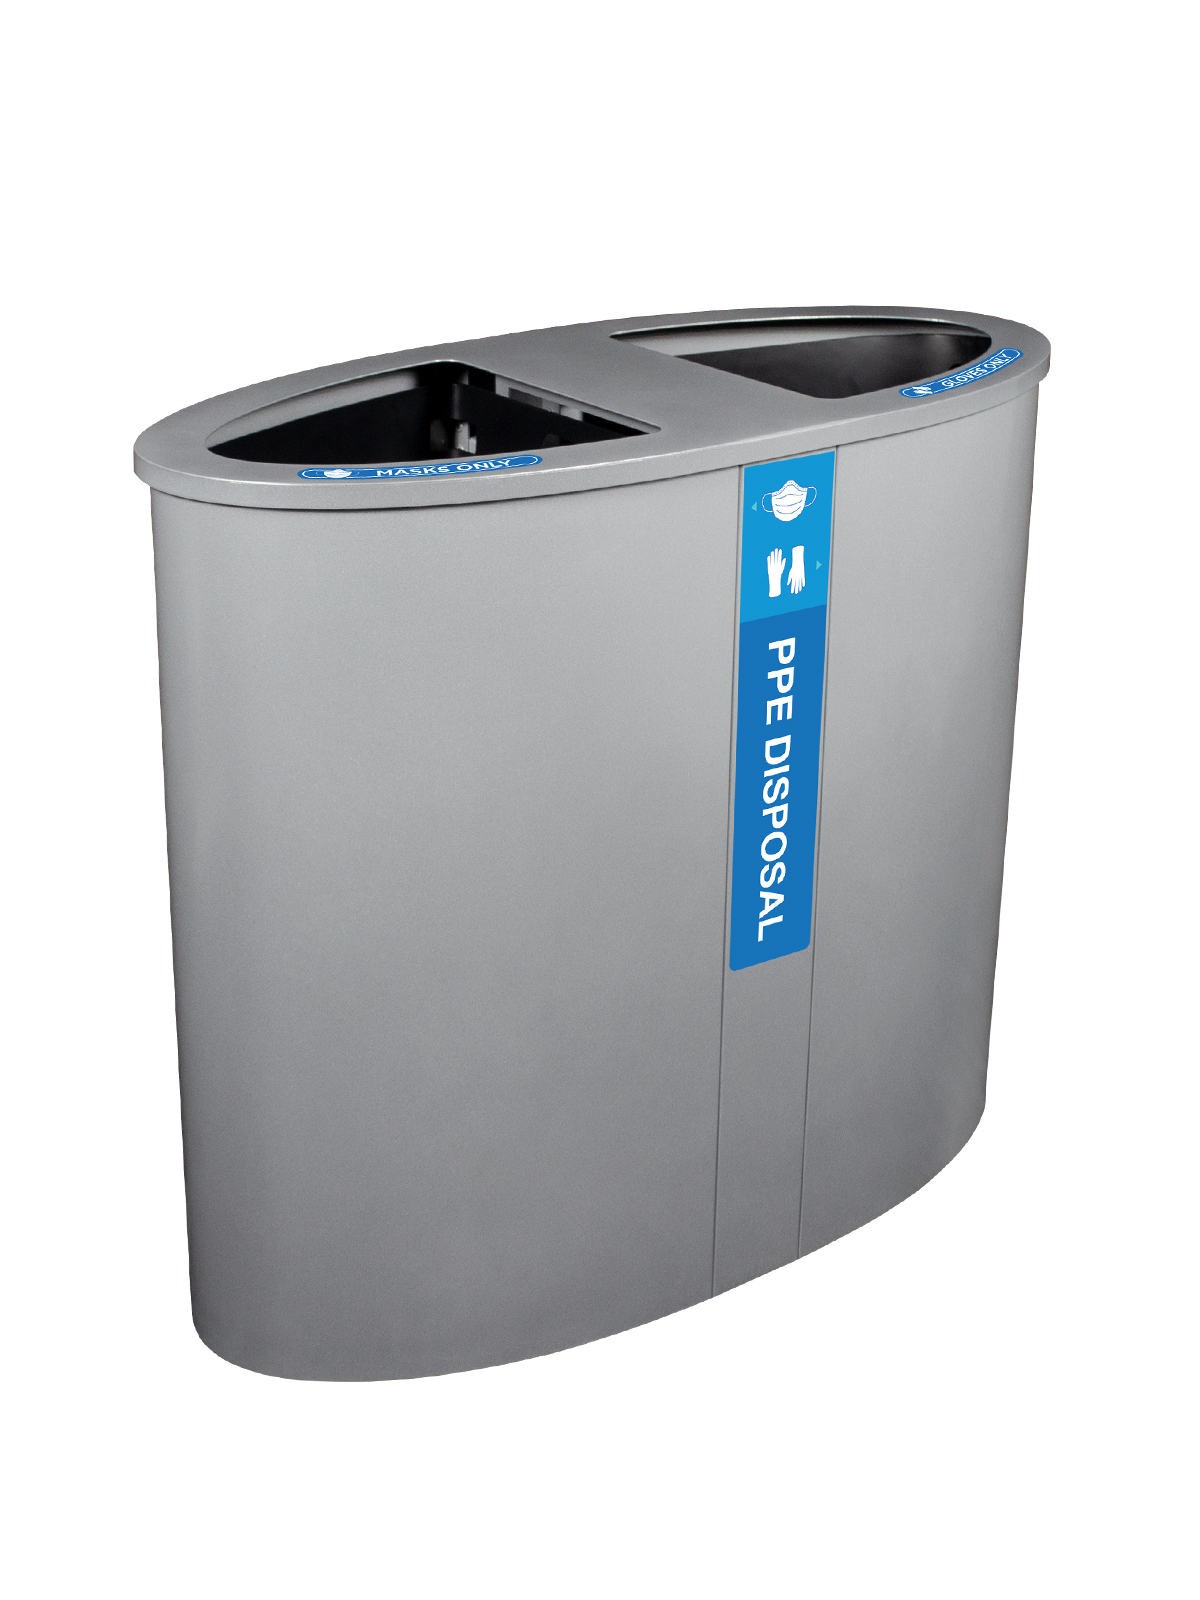 Pacific PPE Collection Bin